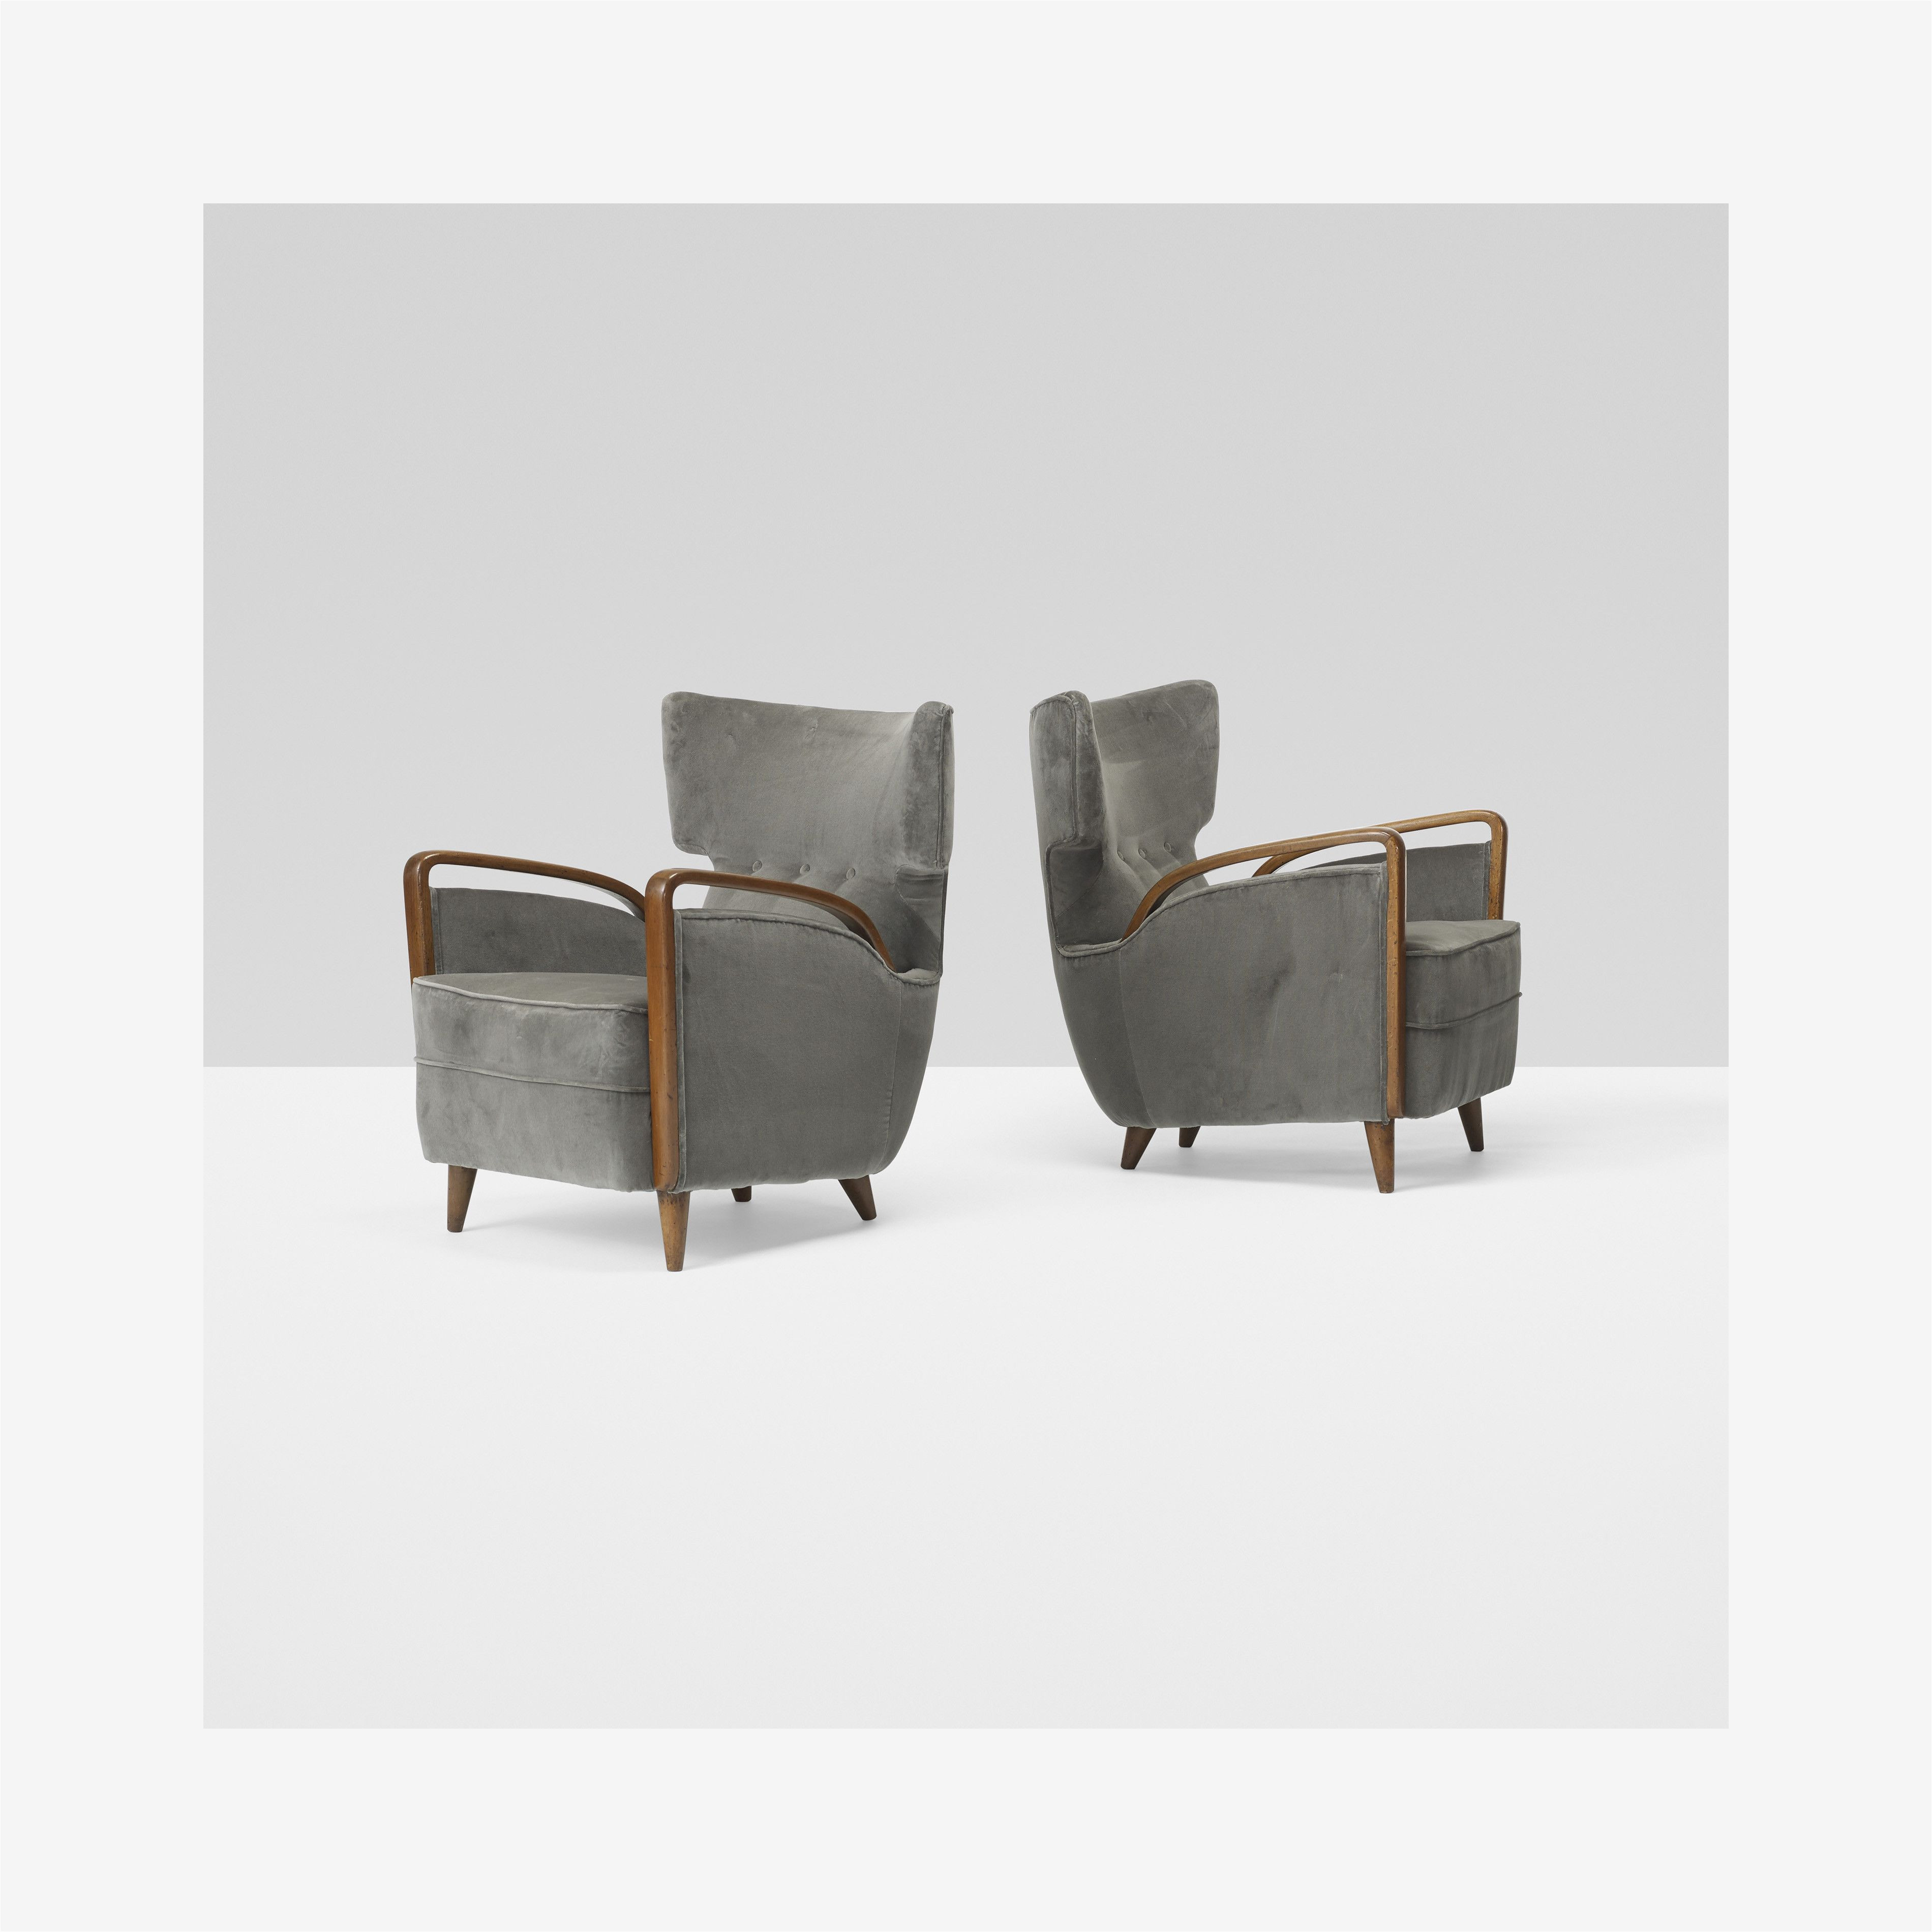 melchiorre bega pair of lounge chairs model 512 cassina italy 1953 italian walnutupholstery 24 5 w x 27 d x 31 h inches estimate 10 000 15 000